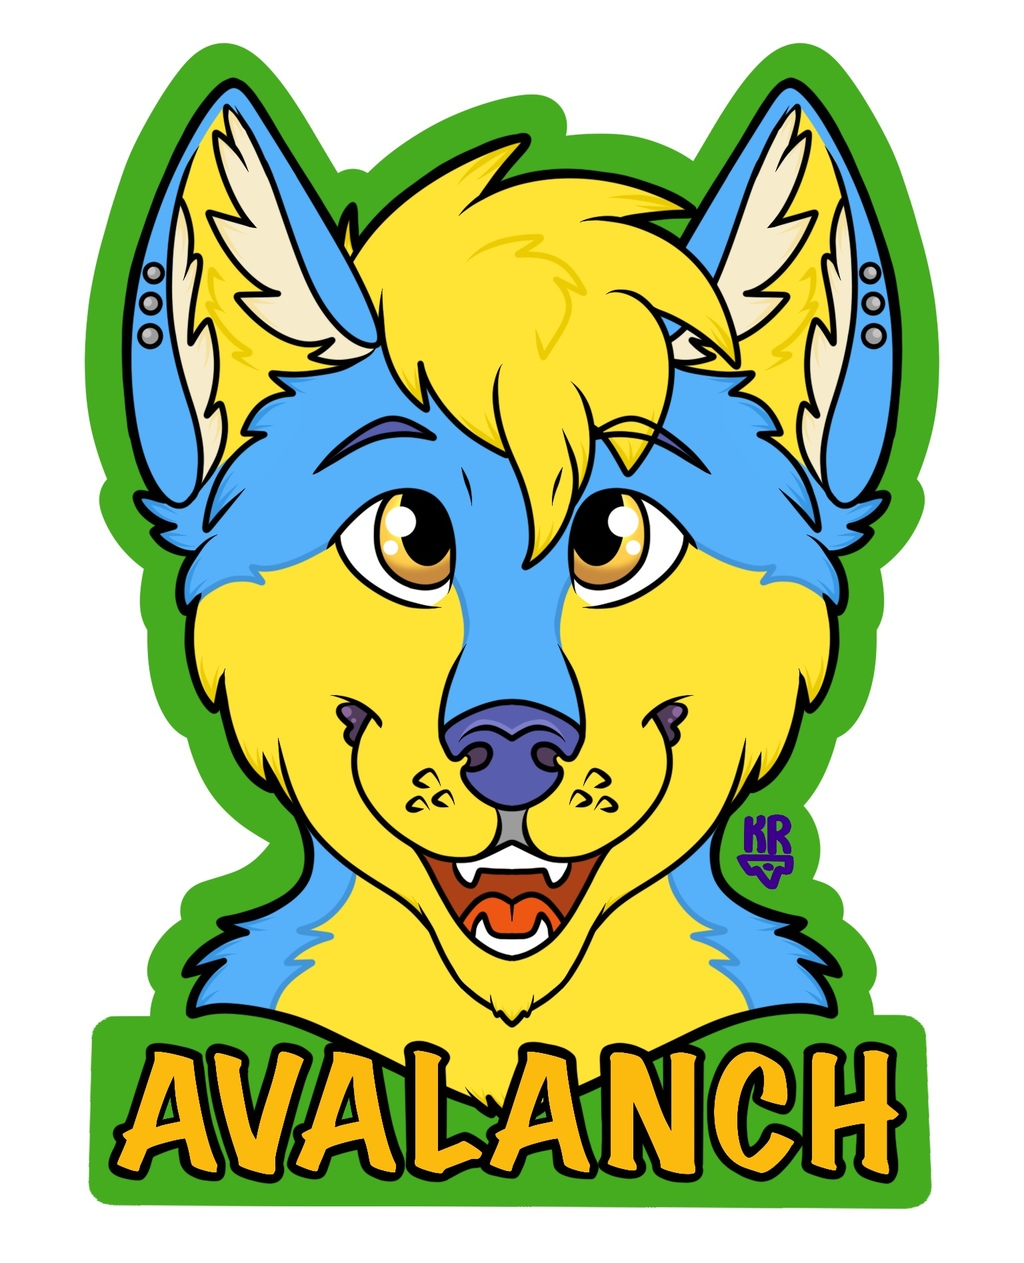 Avalanch BLFC Pickup Badge